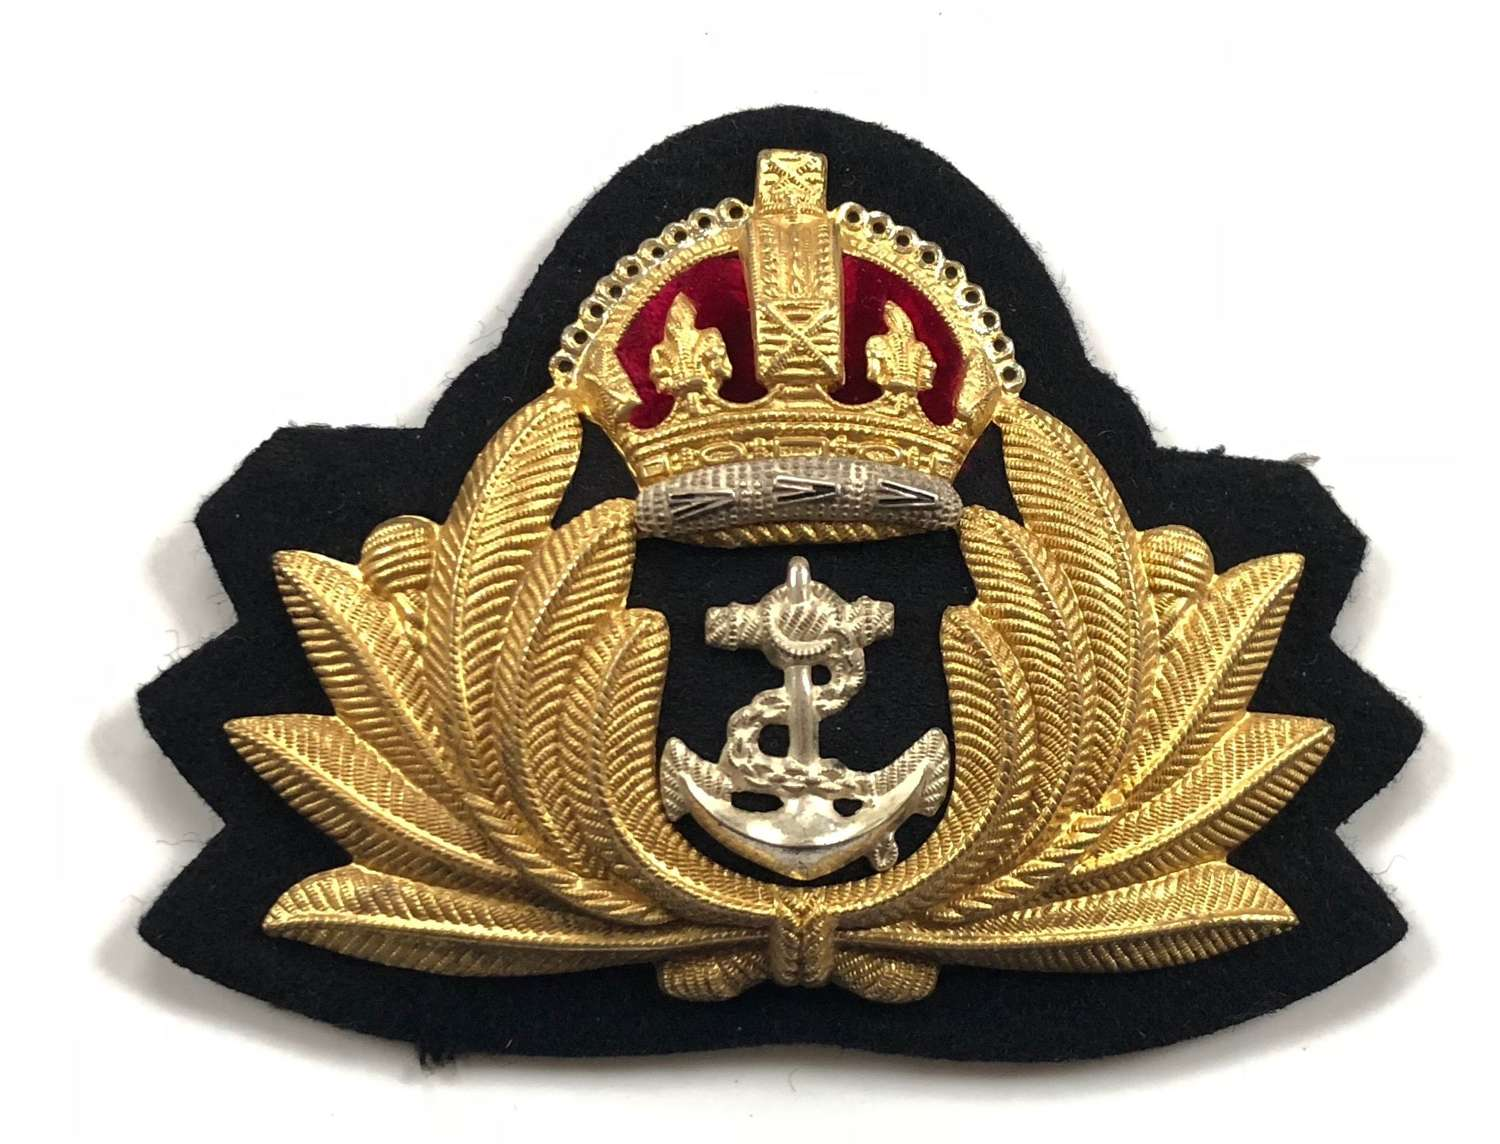 WW2 Royal Navy Officer's Economy Pattern Cap Badge by Gaunt London.